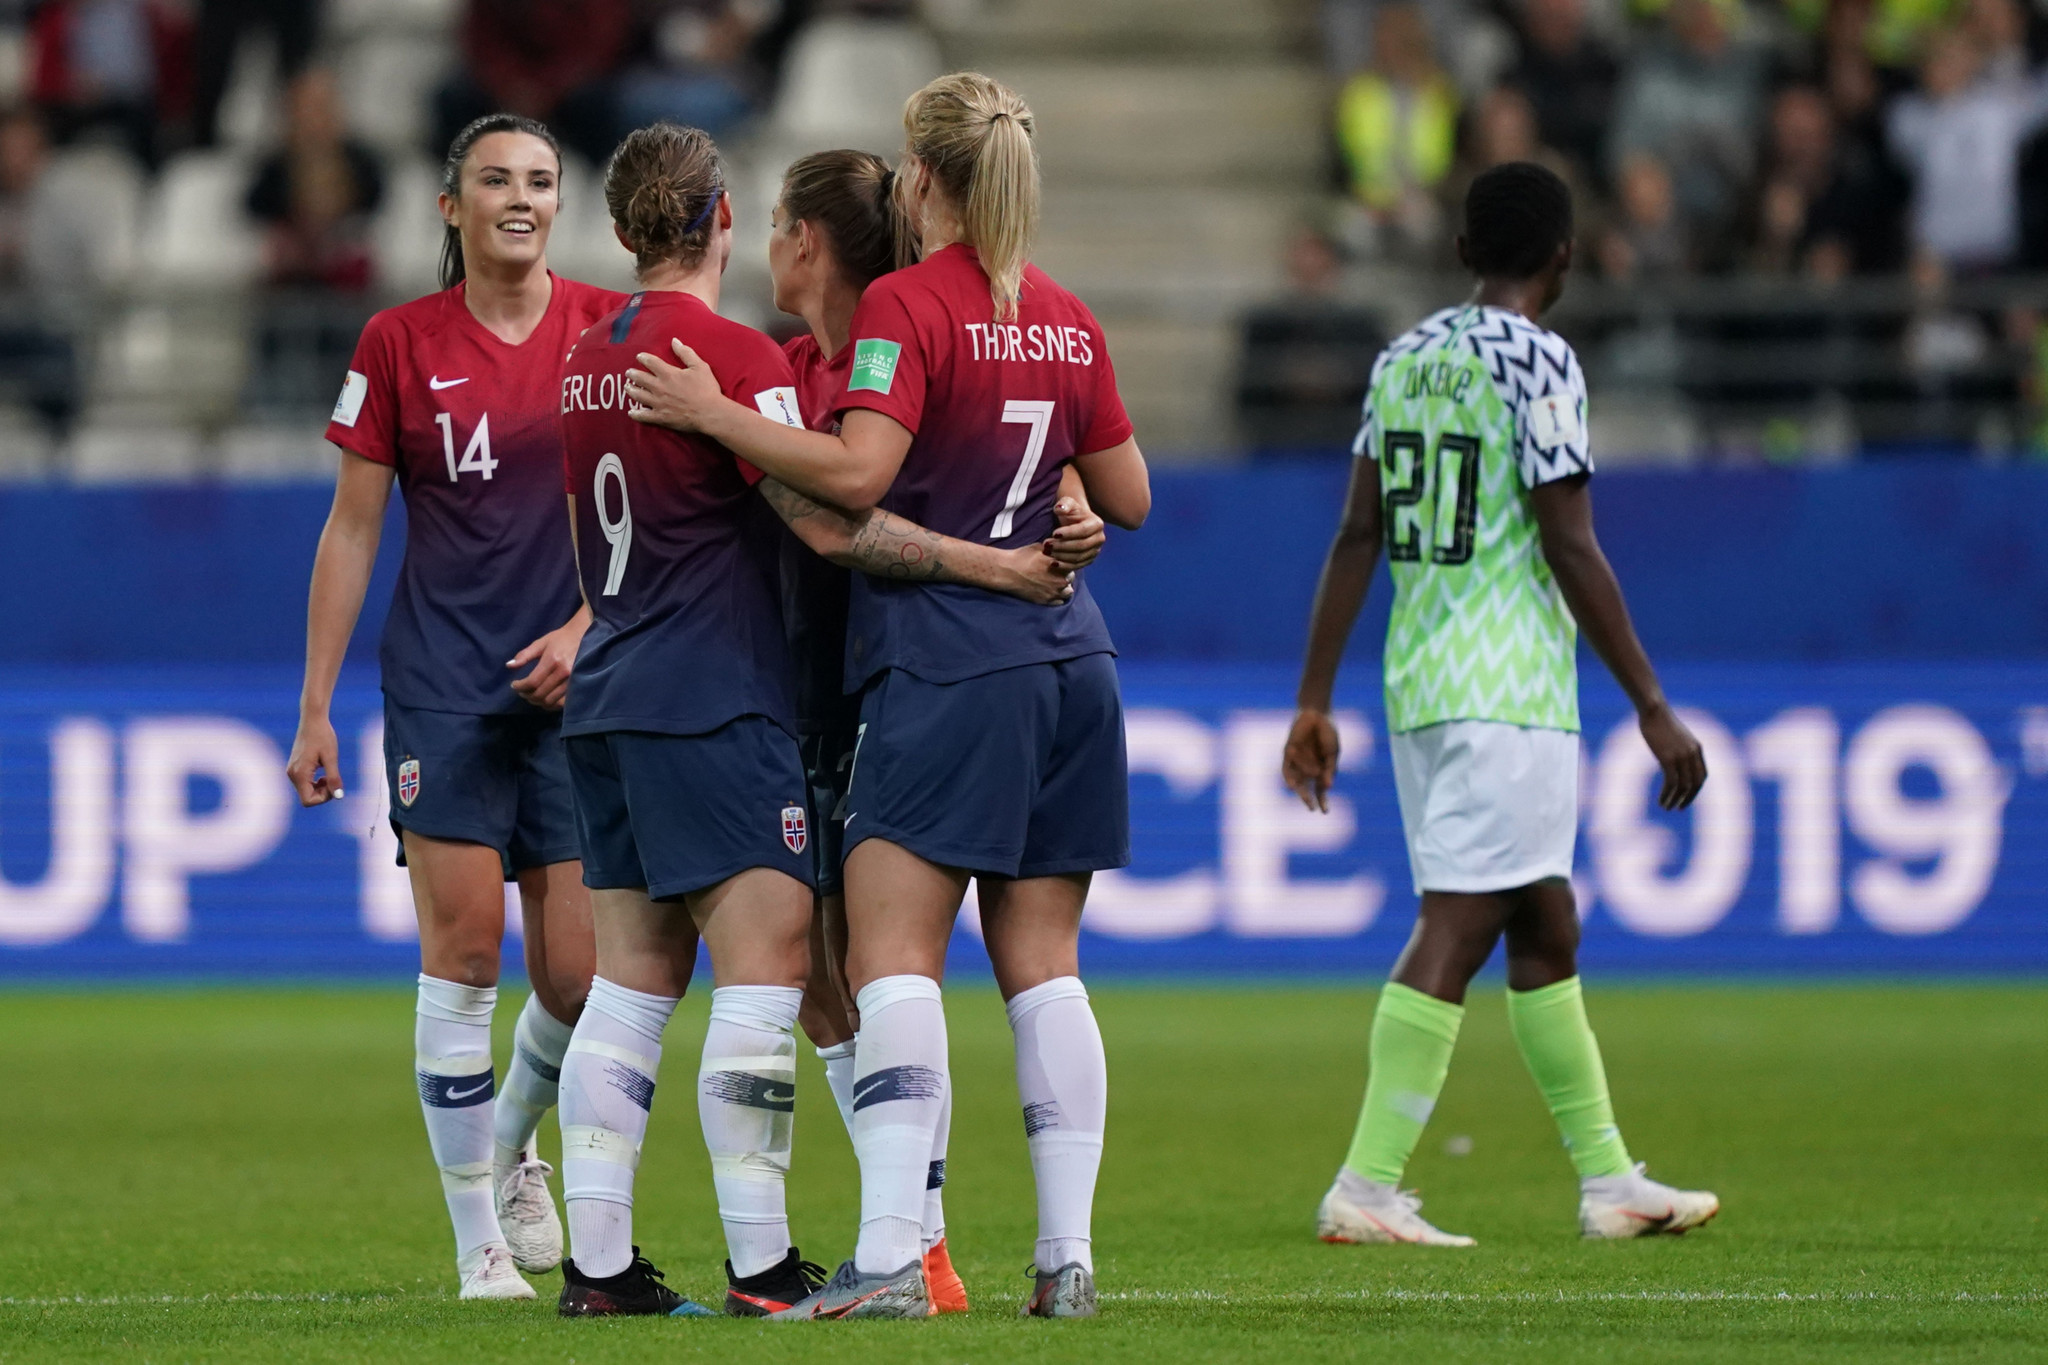 An own goal from Nigeria's Osinachi Ohale secured the 3-0 victory for Norway ©Getty Images